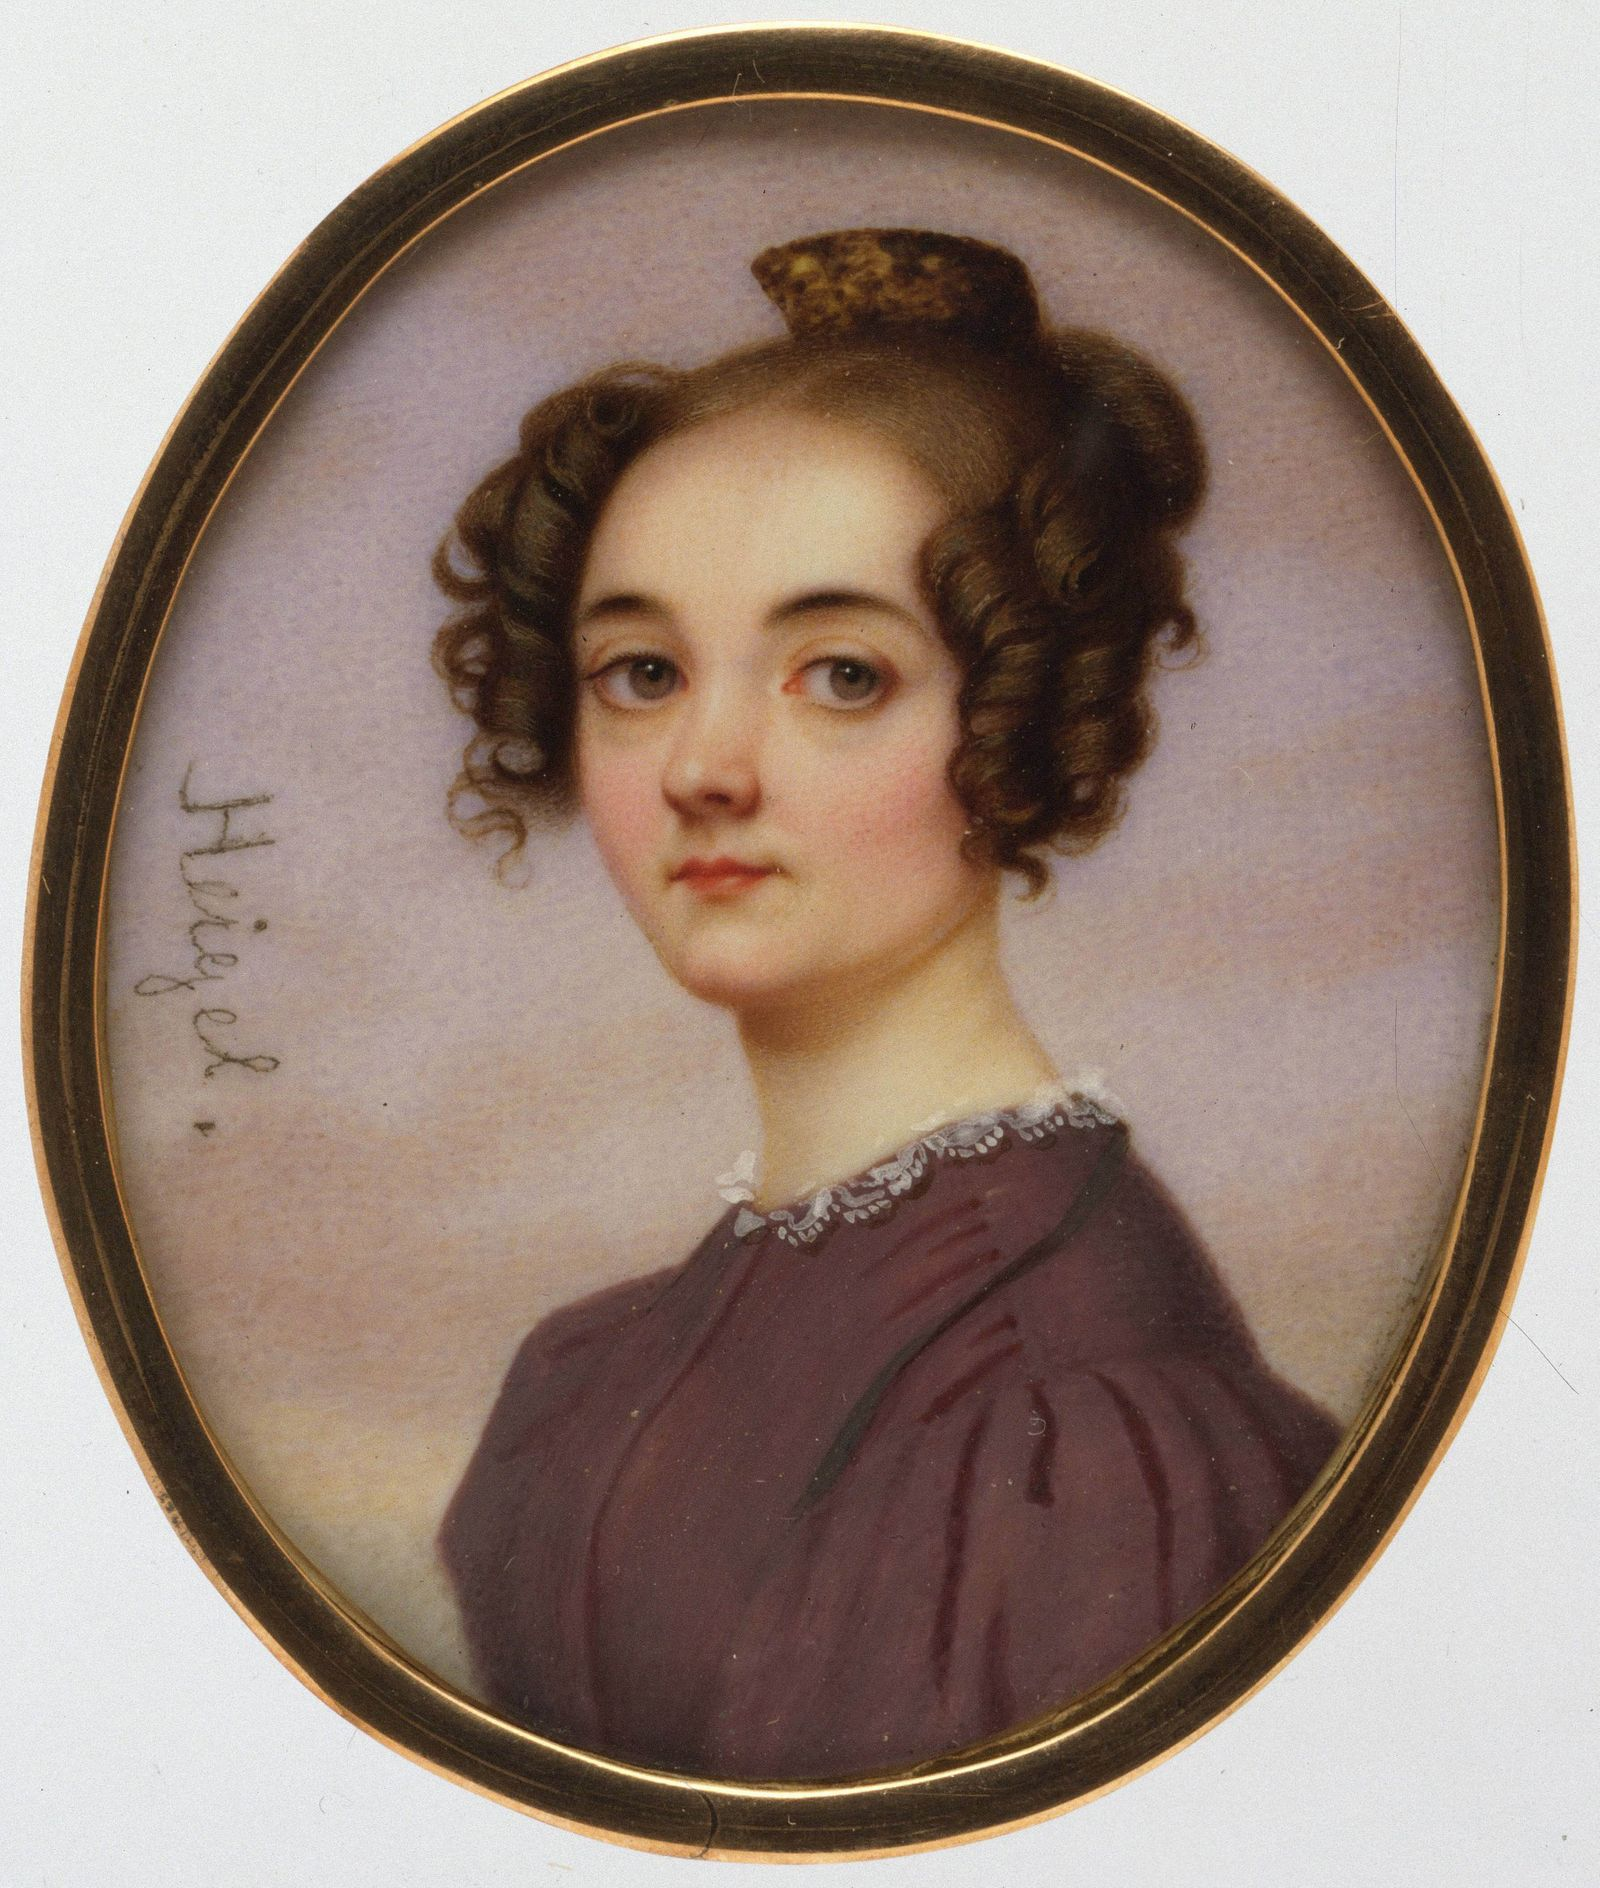 Lola Montez 1818ñ1861 Ivory Oval 2 1 2 x 2 1 8 in 65 x 54 mm Miniatures Attributed to Jose